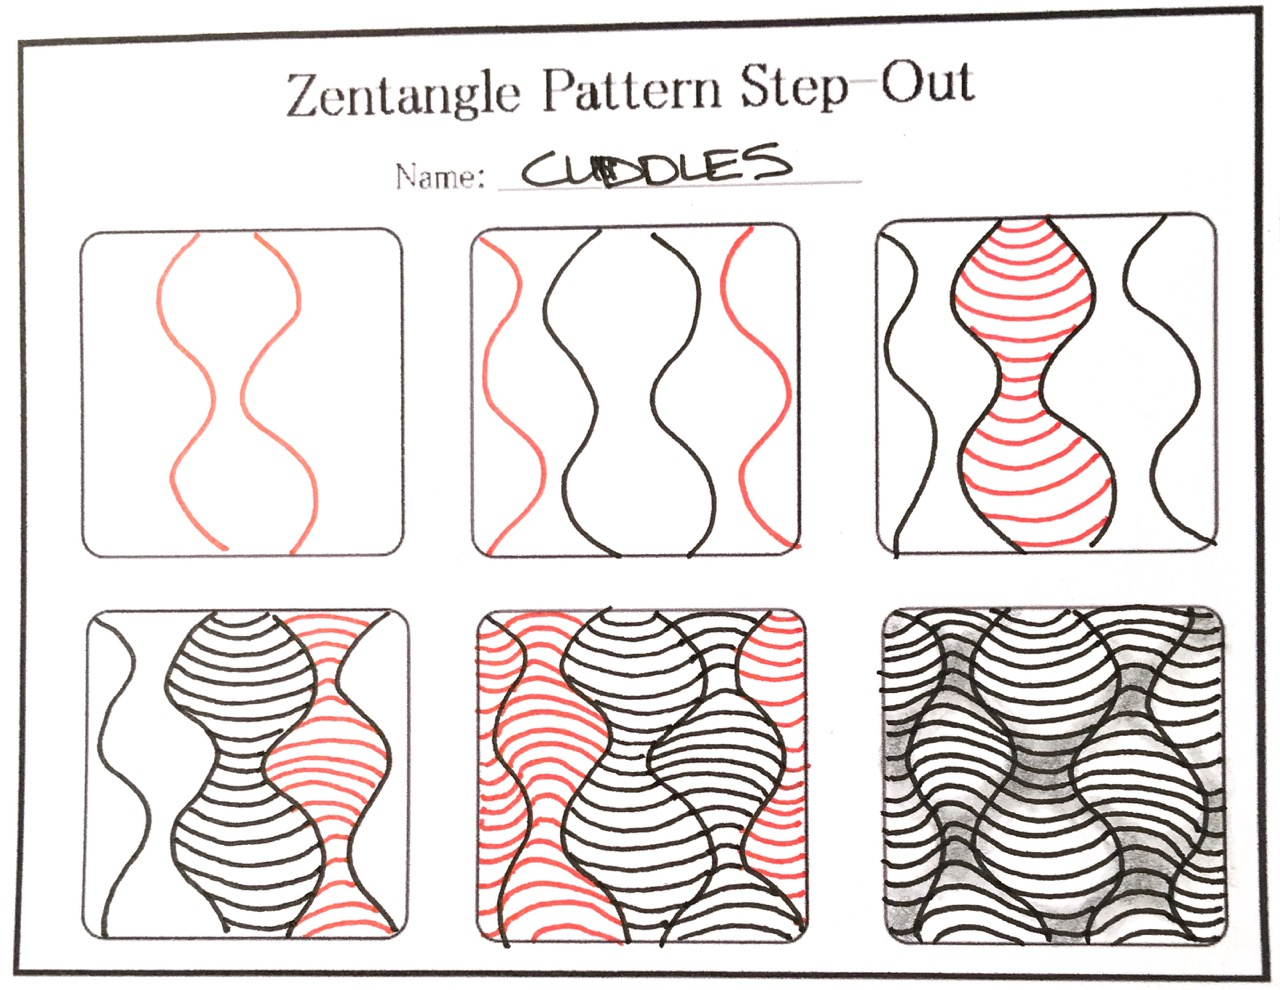 How to Draw the Zentangle Pattern Cuddles, with shading ...